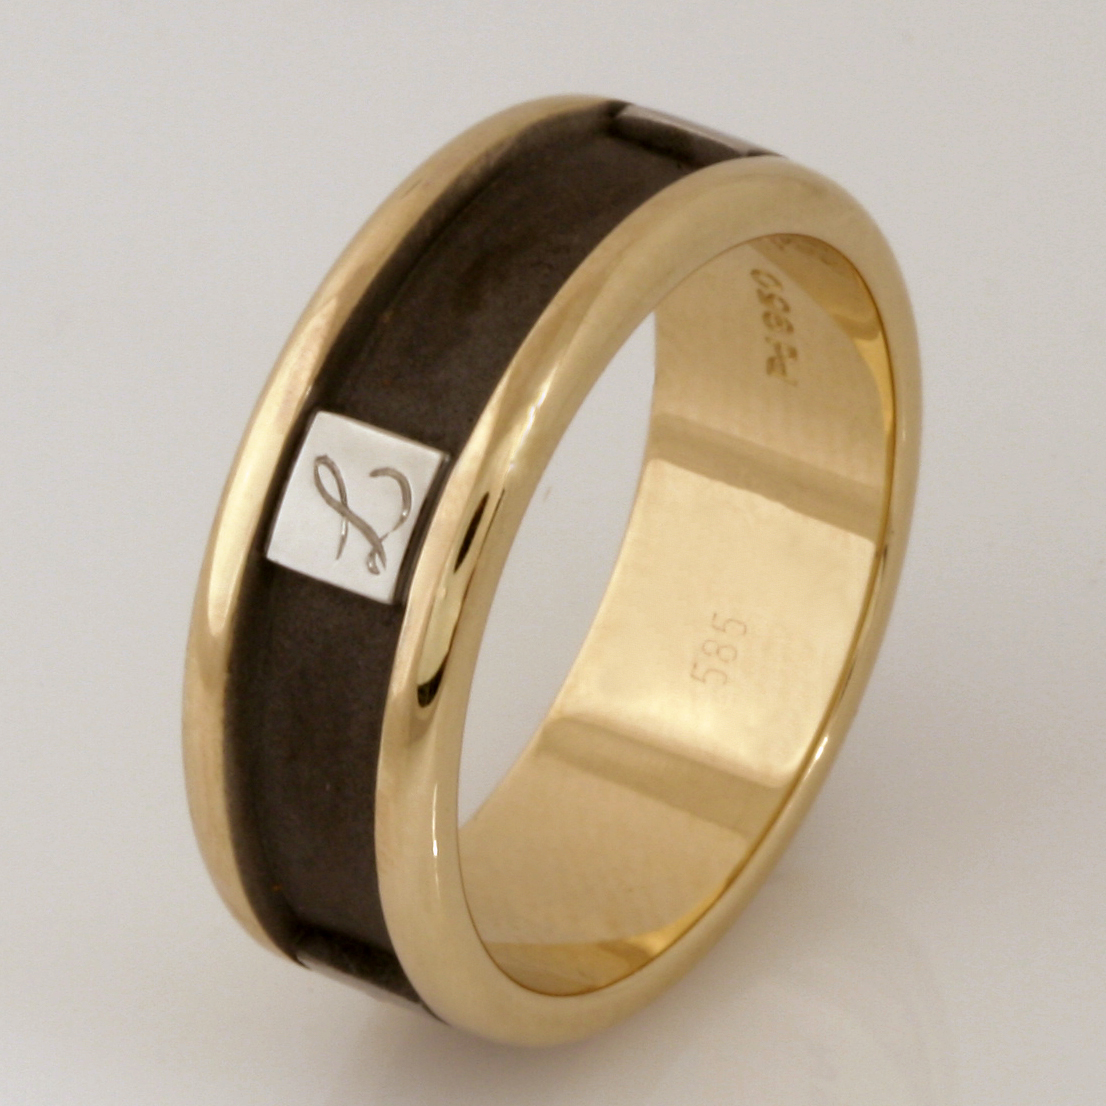 Handmade gents 14ct yellow gold and palladium ring with sandblasted and ruthenium plating